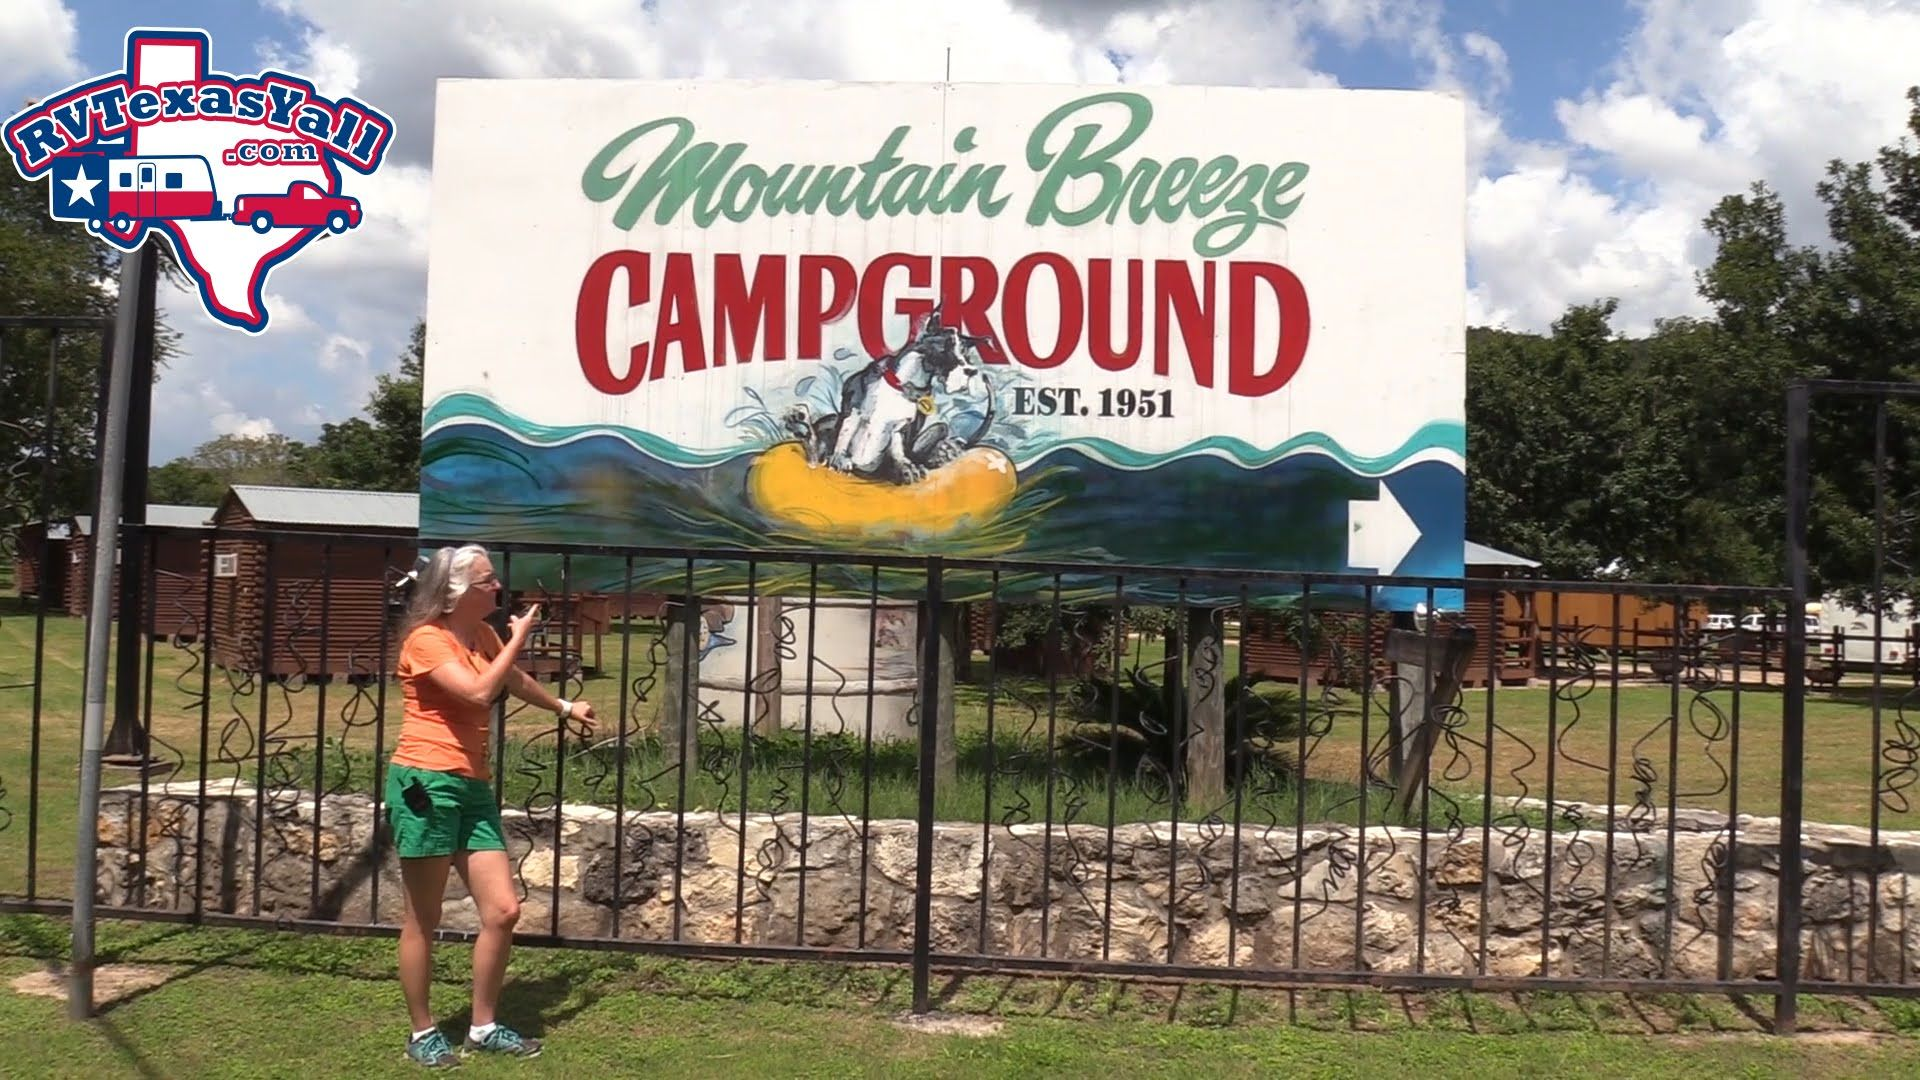 Mountain Breeze Campground New Braunfels Tx Campground Tour Rv Texas Y All Visits Mountain Breeze And Takes Y Camping In Texas Campground Texas State Parks